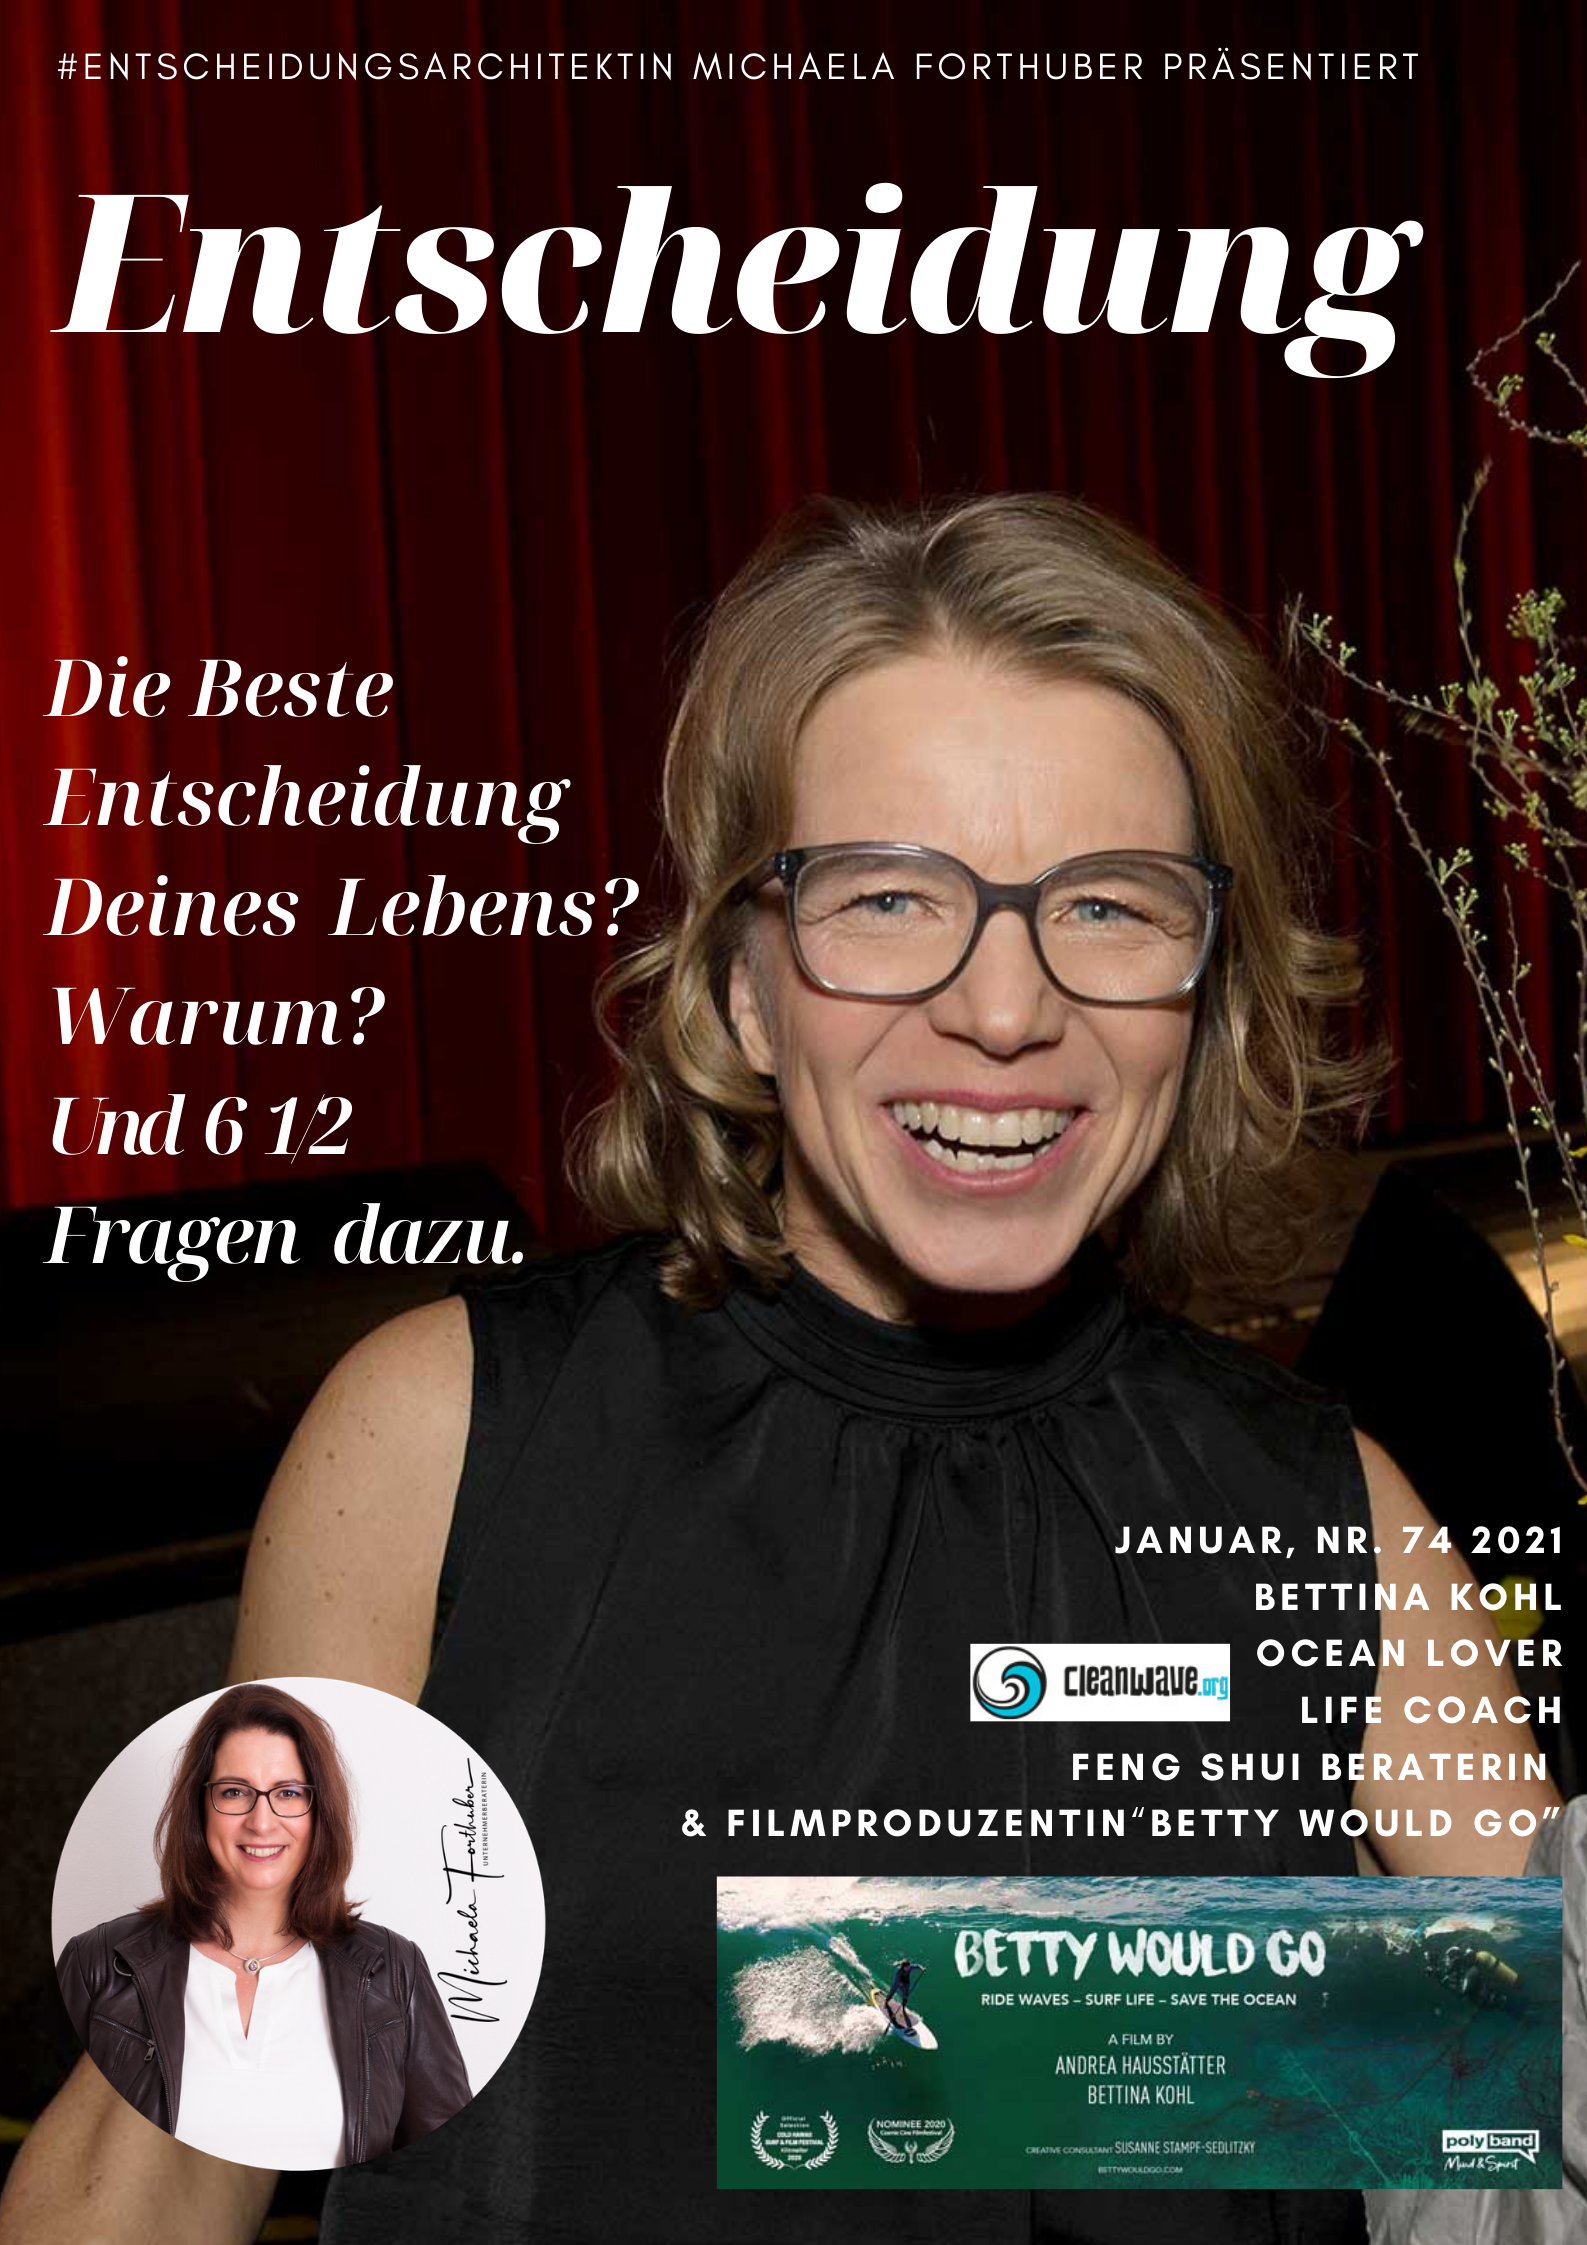 Blog Interview Entscheiden Cover Michaela Forthuber #Entscheidungsarchitektin mit Bettina Kohl